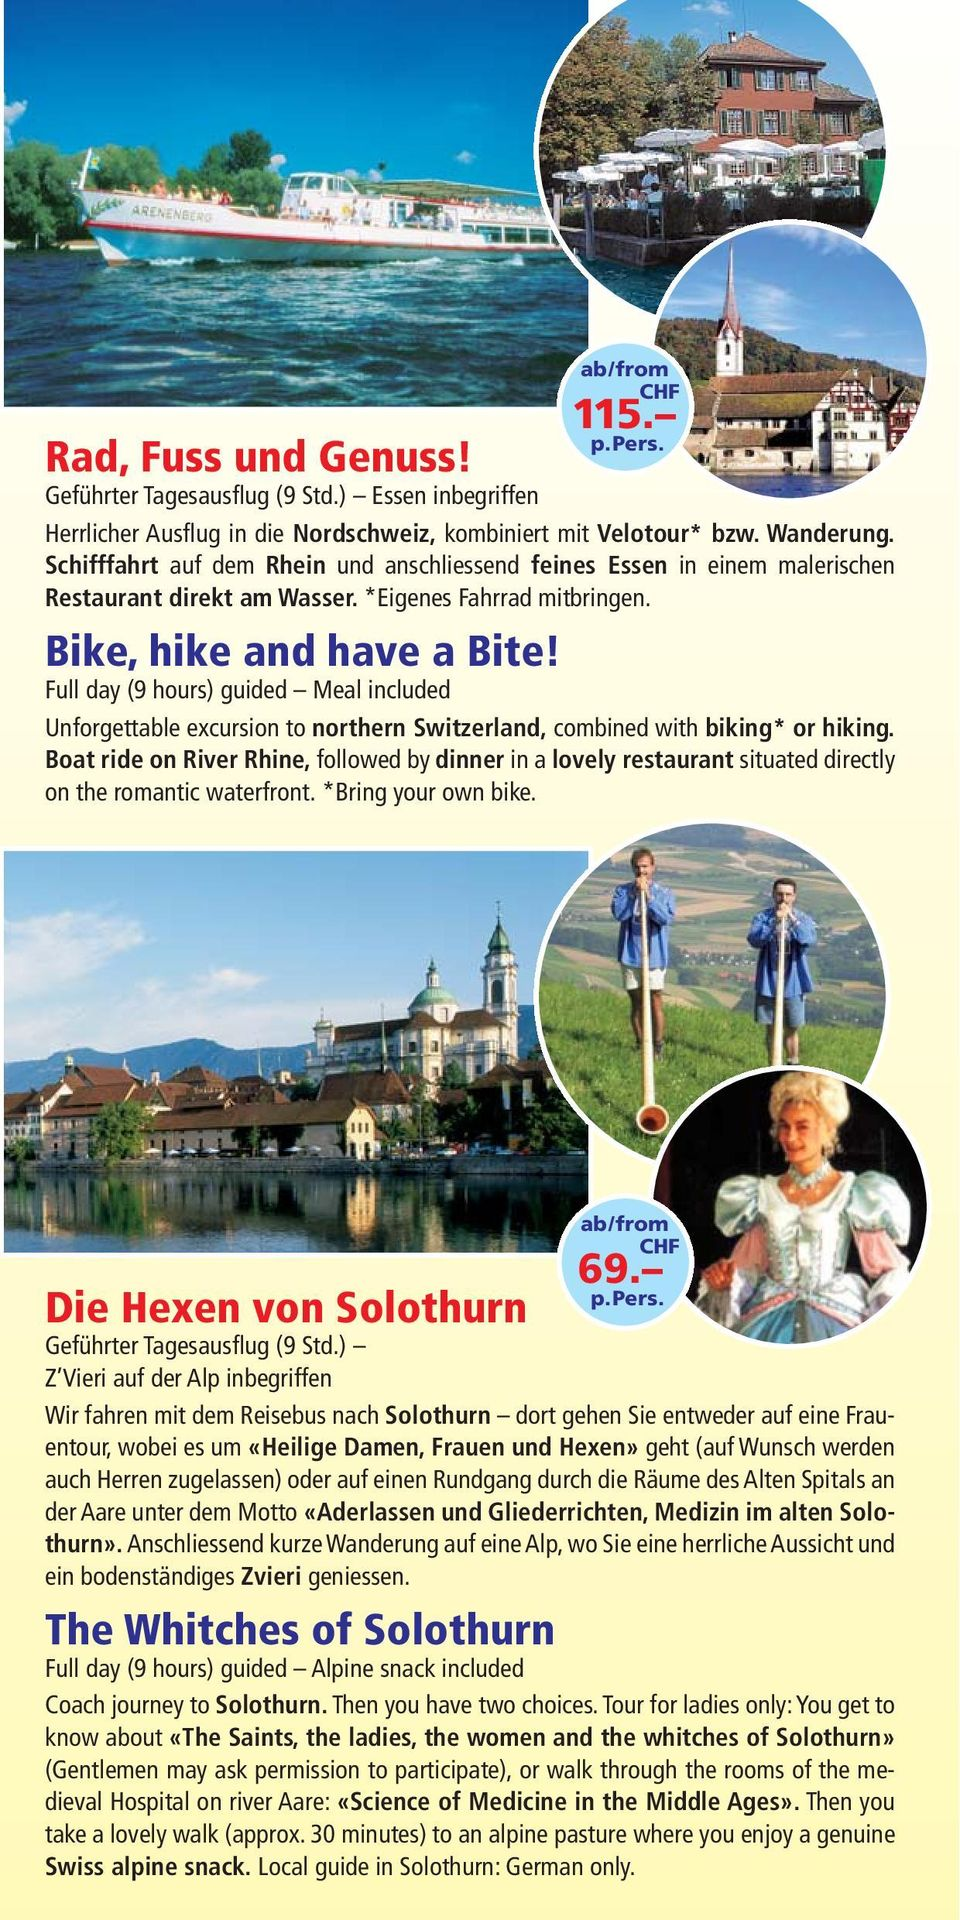 Full day (9 hours) guided Meal included 115. Unforgettable excursion to northern Switzerland, combined with biking* or hiking.